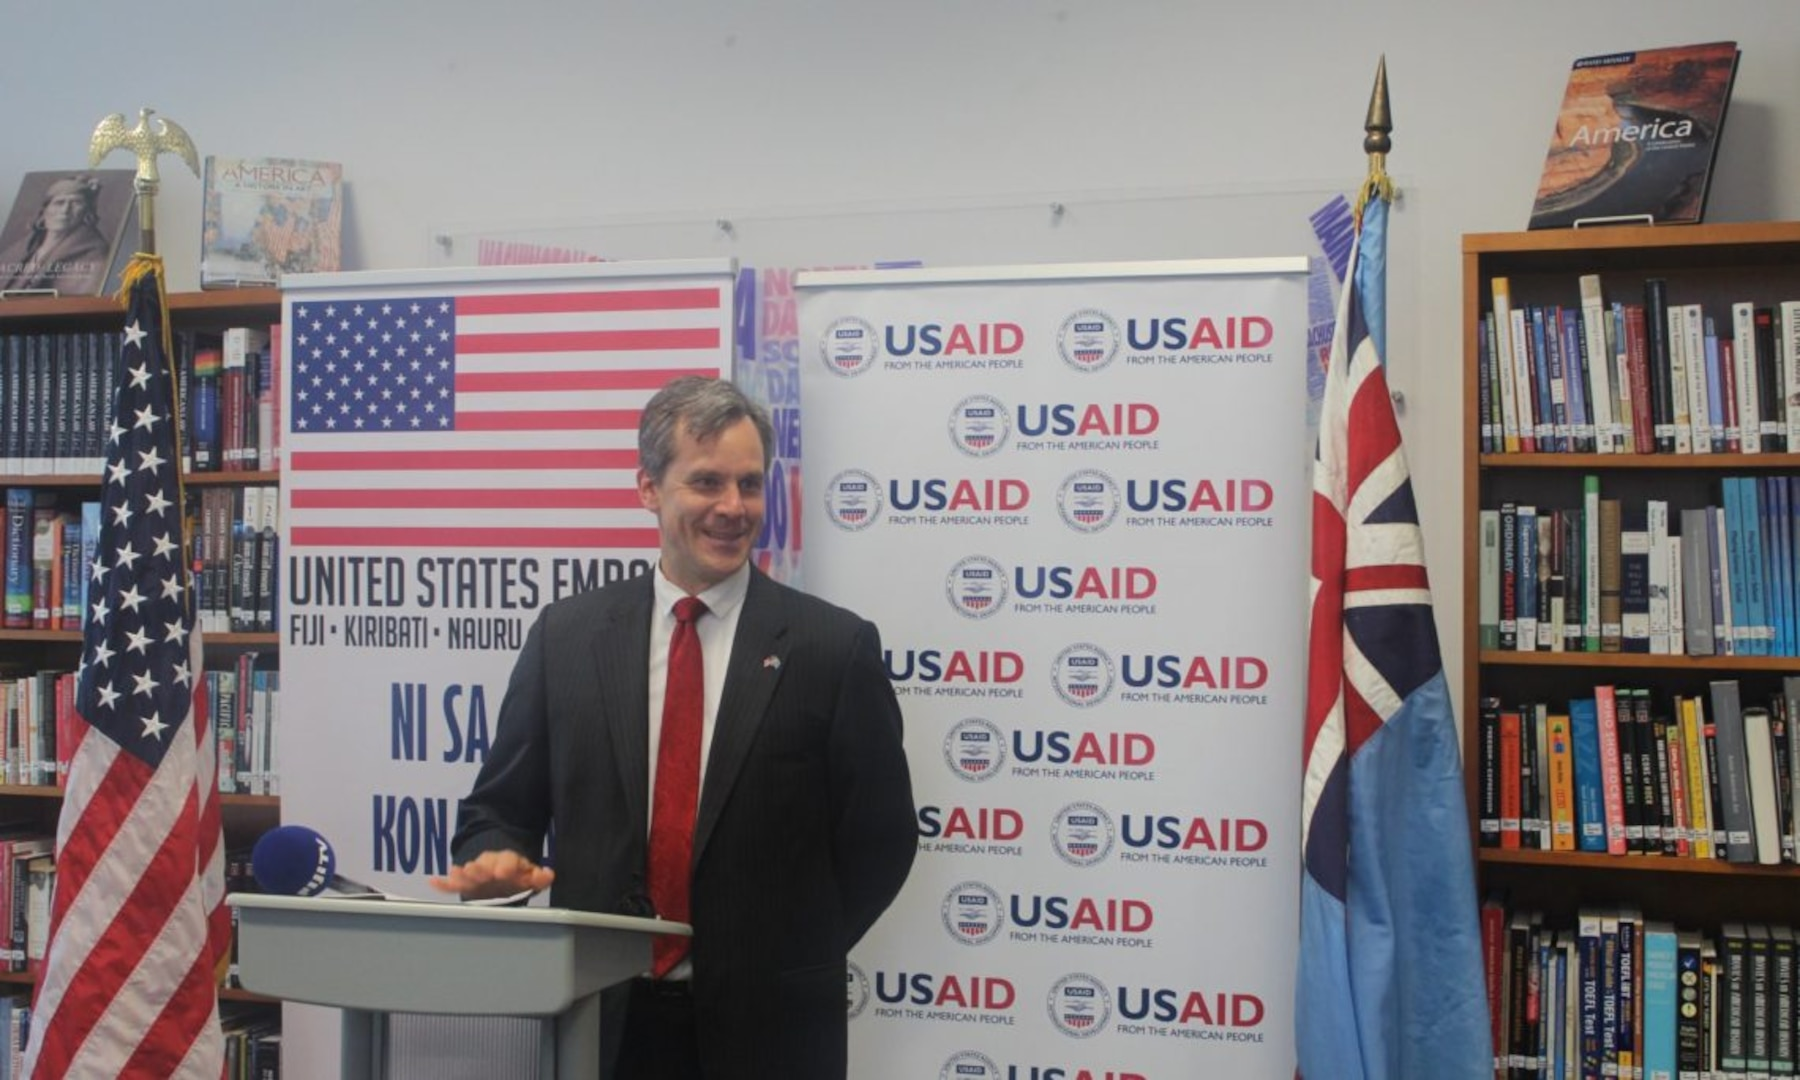 U.S. Government Provides Additional US$9.9 Million to Support COVID-19 Efforts in the Pacific Islands Region